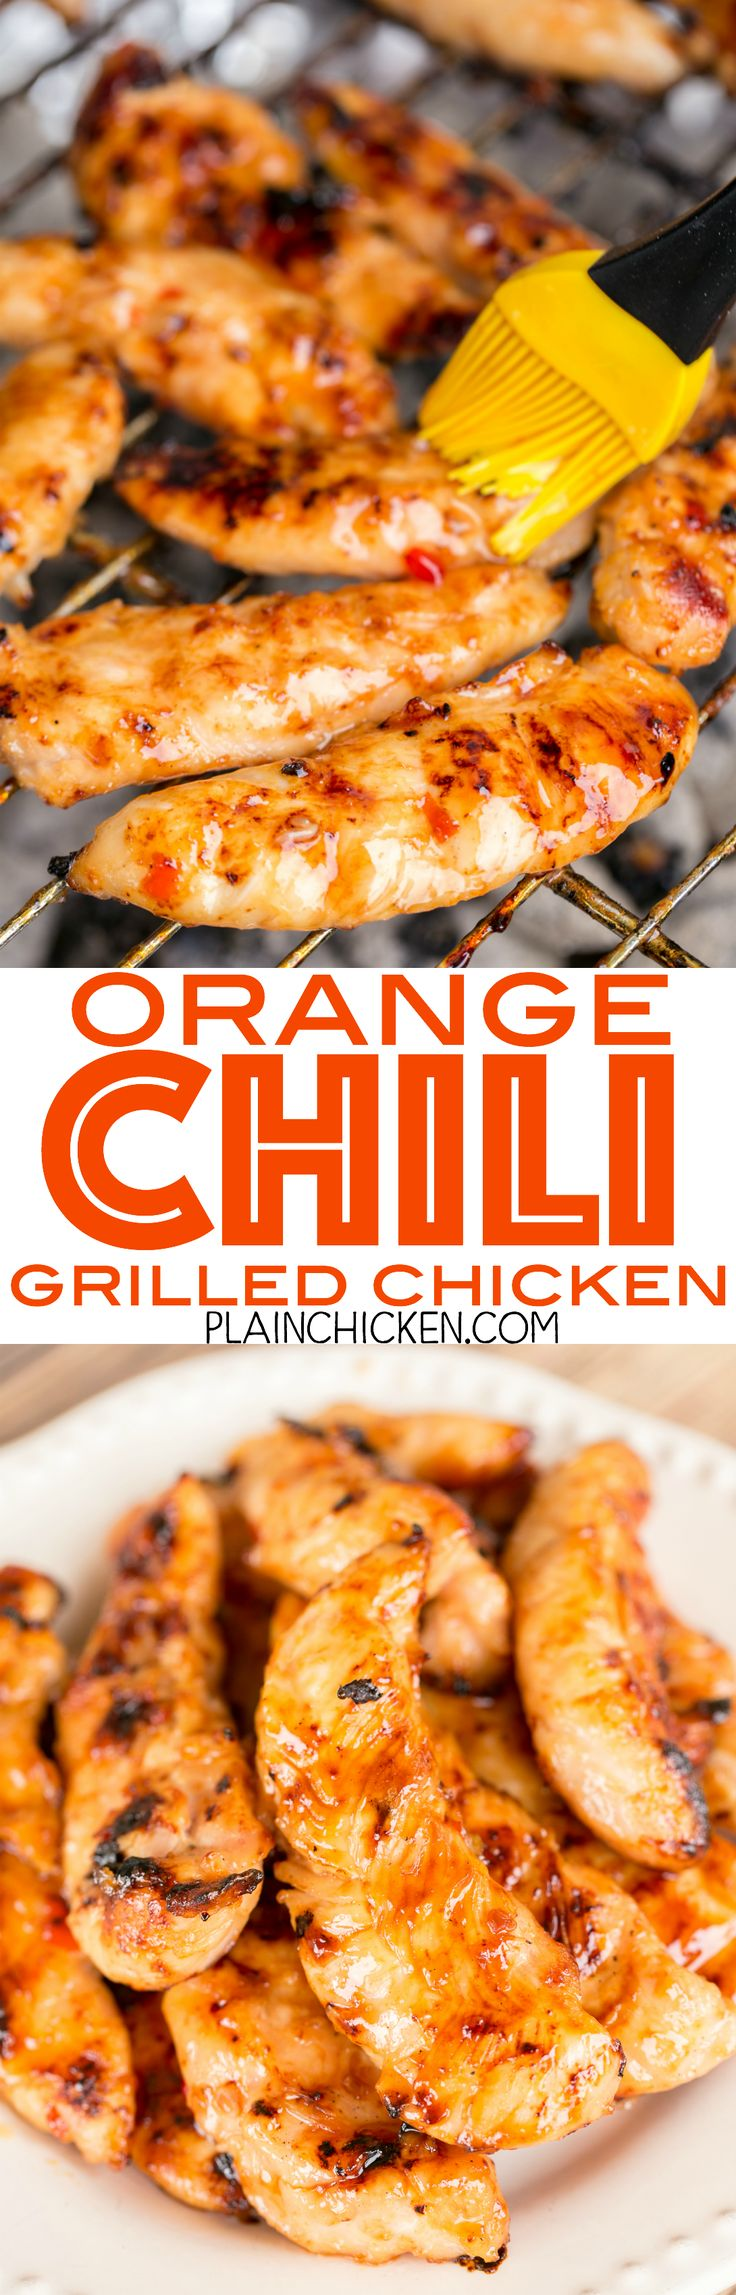 Orange Chili Grilled Chicken - seriously delicious! Only 4 ingredients! Chicken, sweet chili sauce, honey and orange juice. Grill and baste with reserved sauce. SO much great flavor!!! We always double the recipe for leftovers - great on a salad or in a w